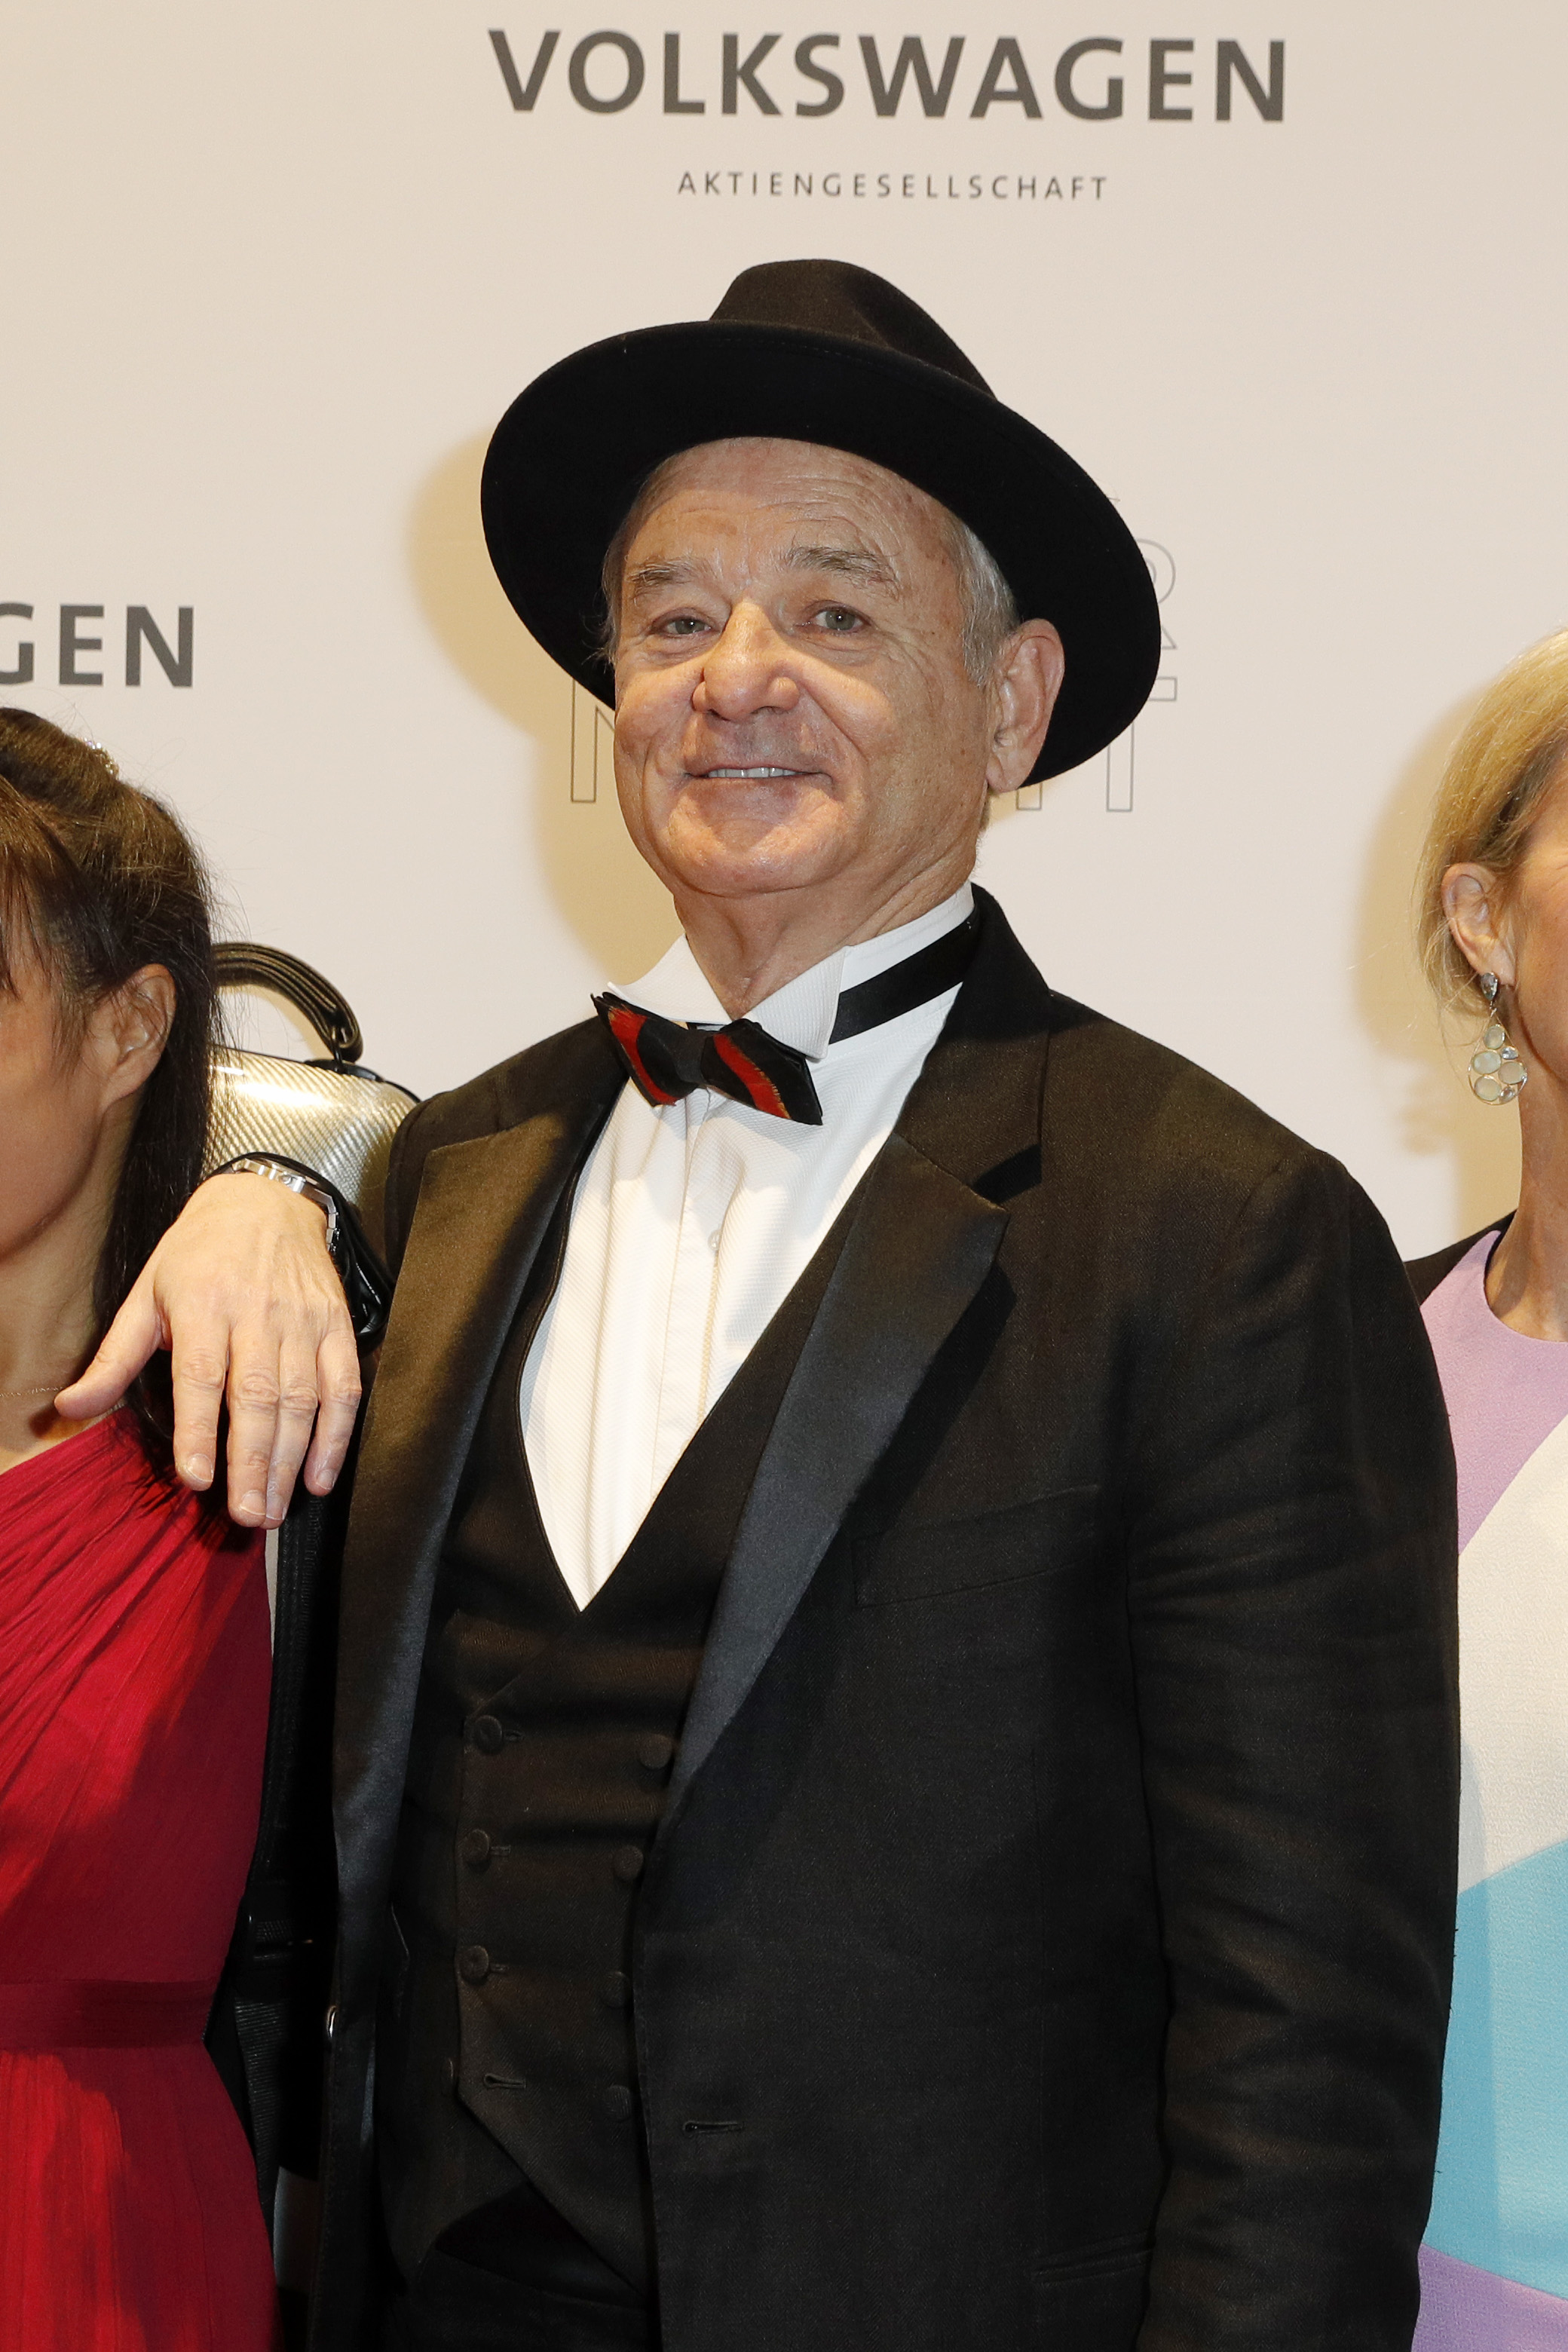 Bill Murray is pleased that we've finally put this horrible incident behind us.